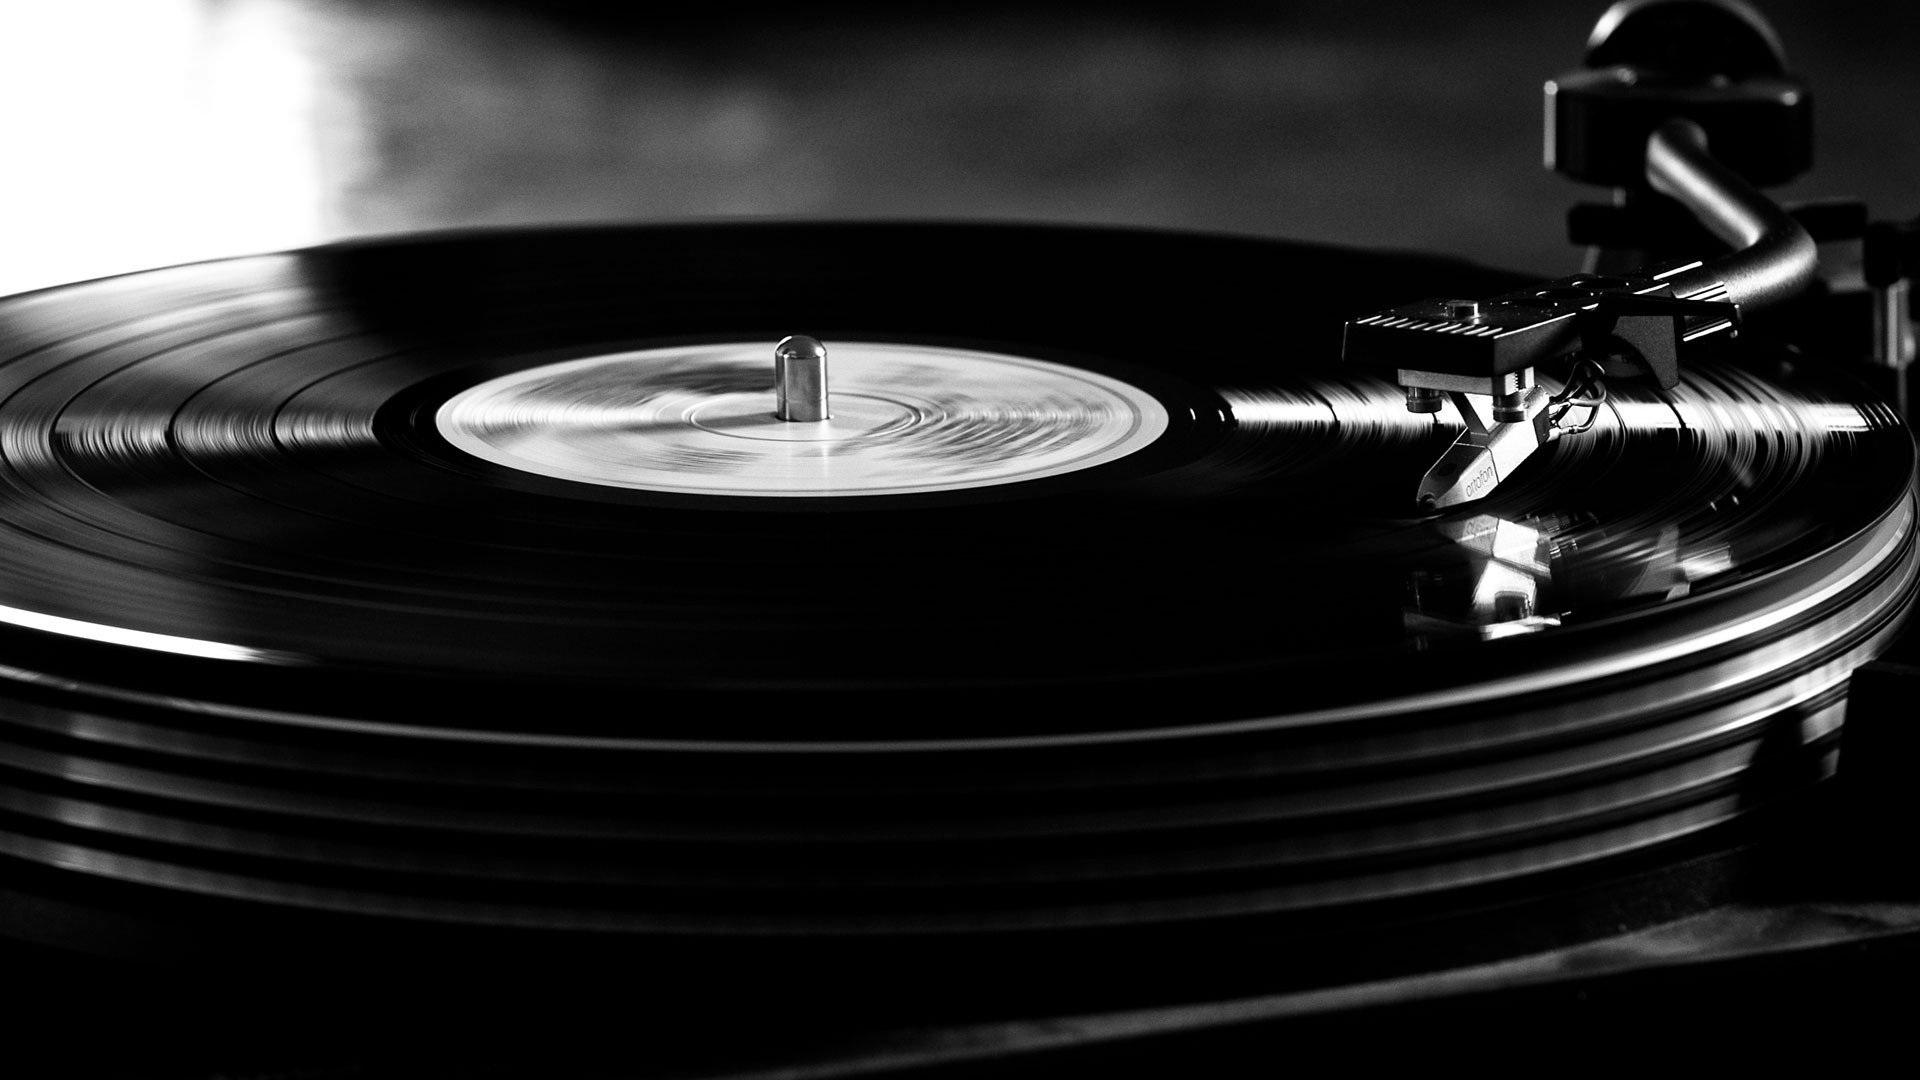 Download vintage vinyl record player wallpaper HD wallpaper 1920x1080